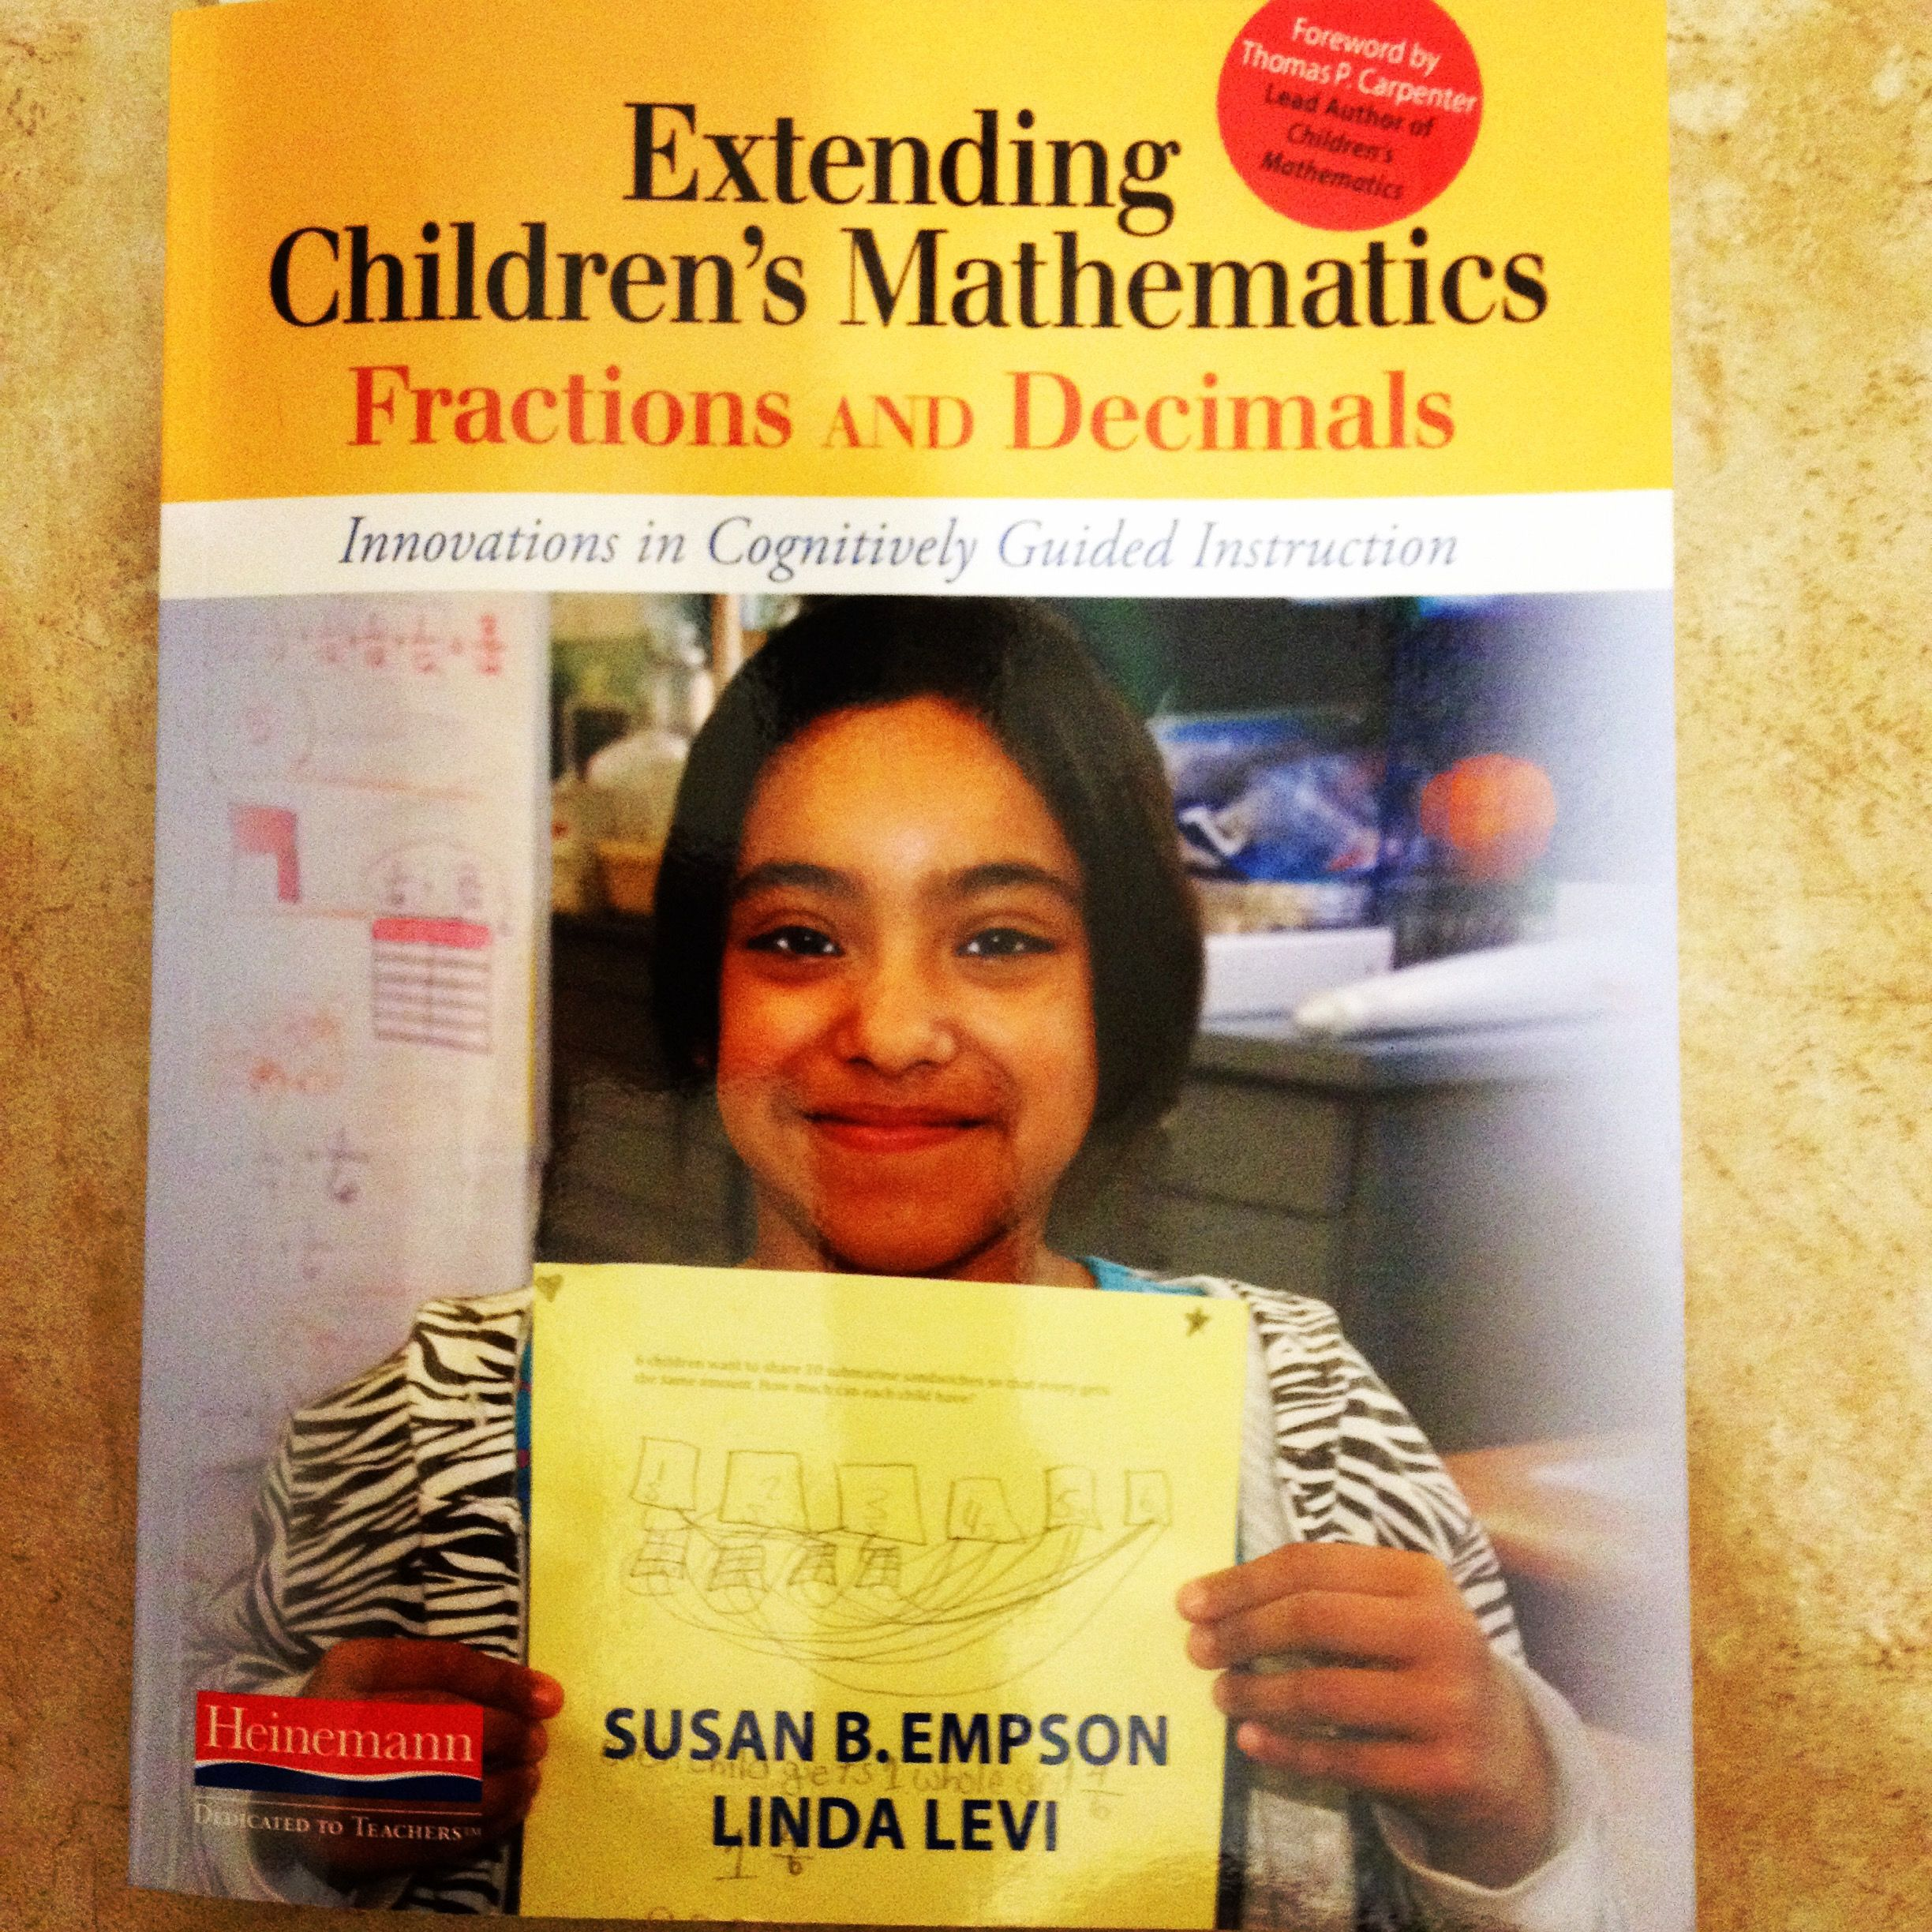 GREAT book for understanding and guiding students through the process of learning all about fractions and decimals: Extending Children's Mathematics